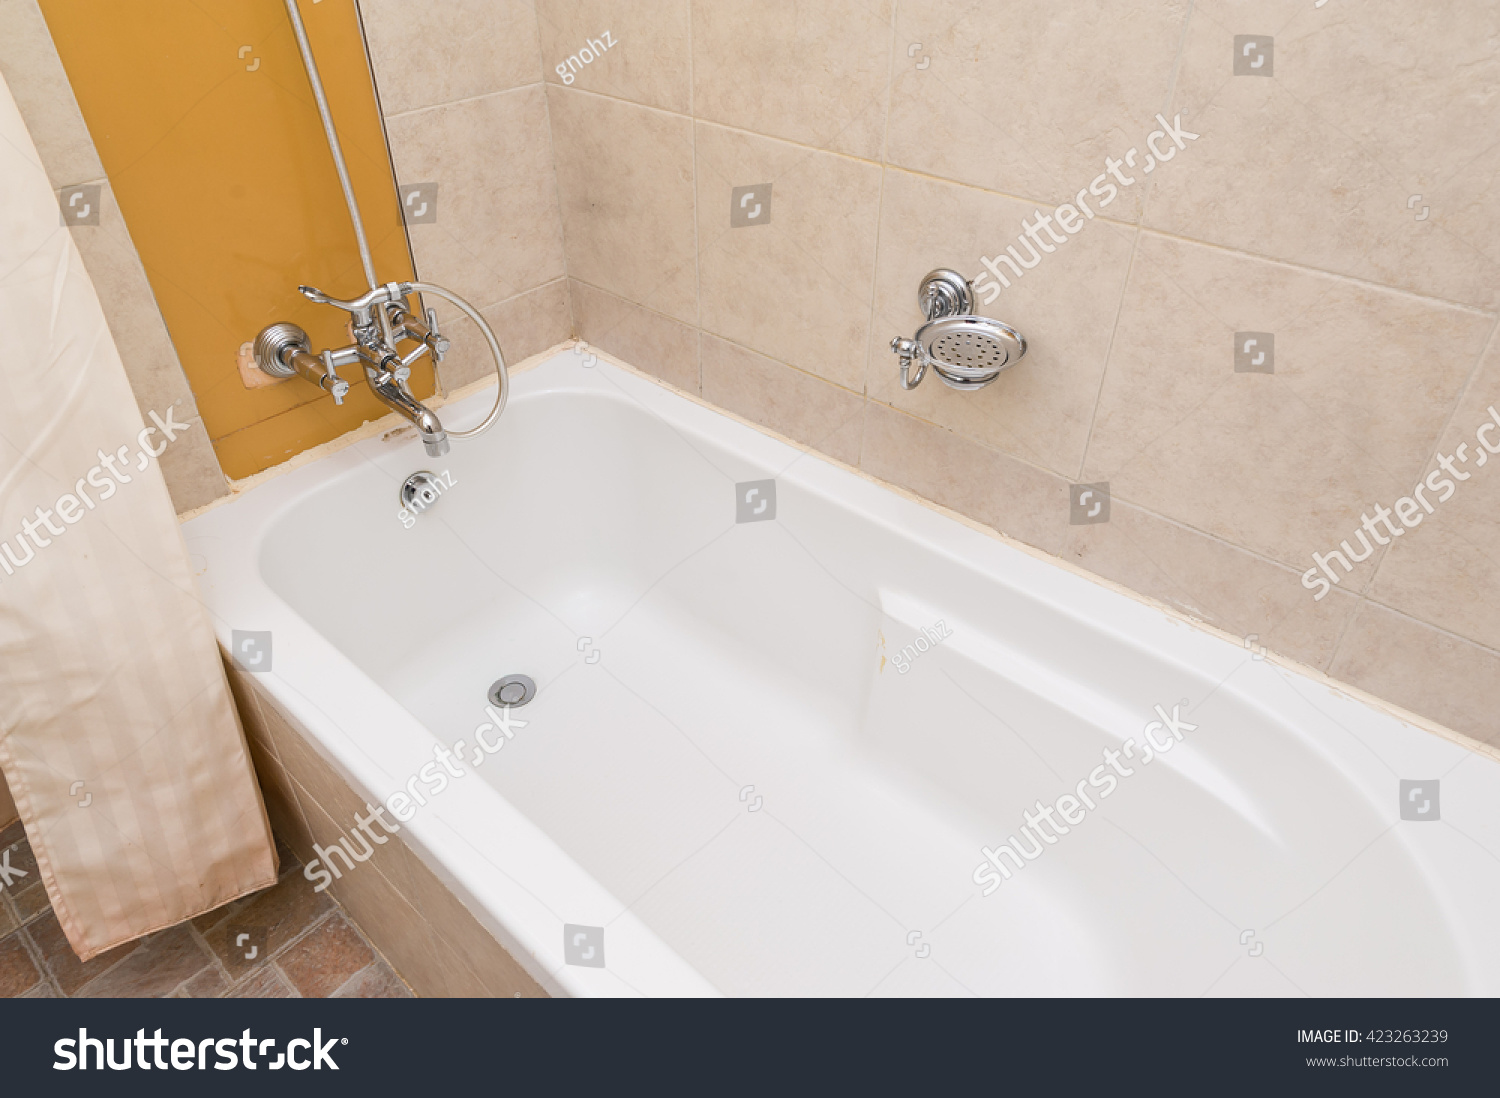 Clean New Hotel Bathroom Tub Travel Stock Photo (Edit Now) 423263239 ...